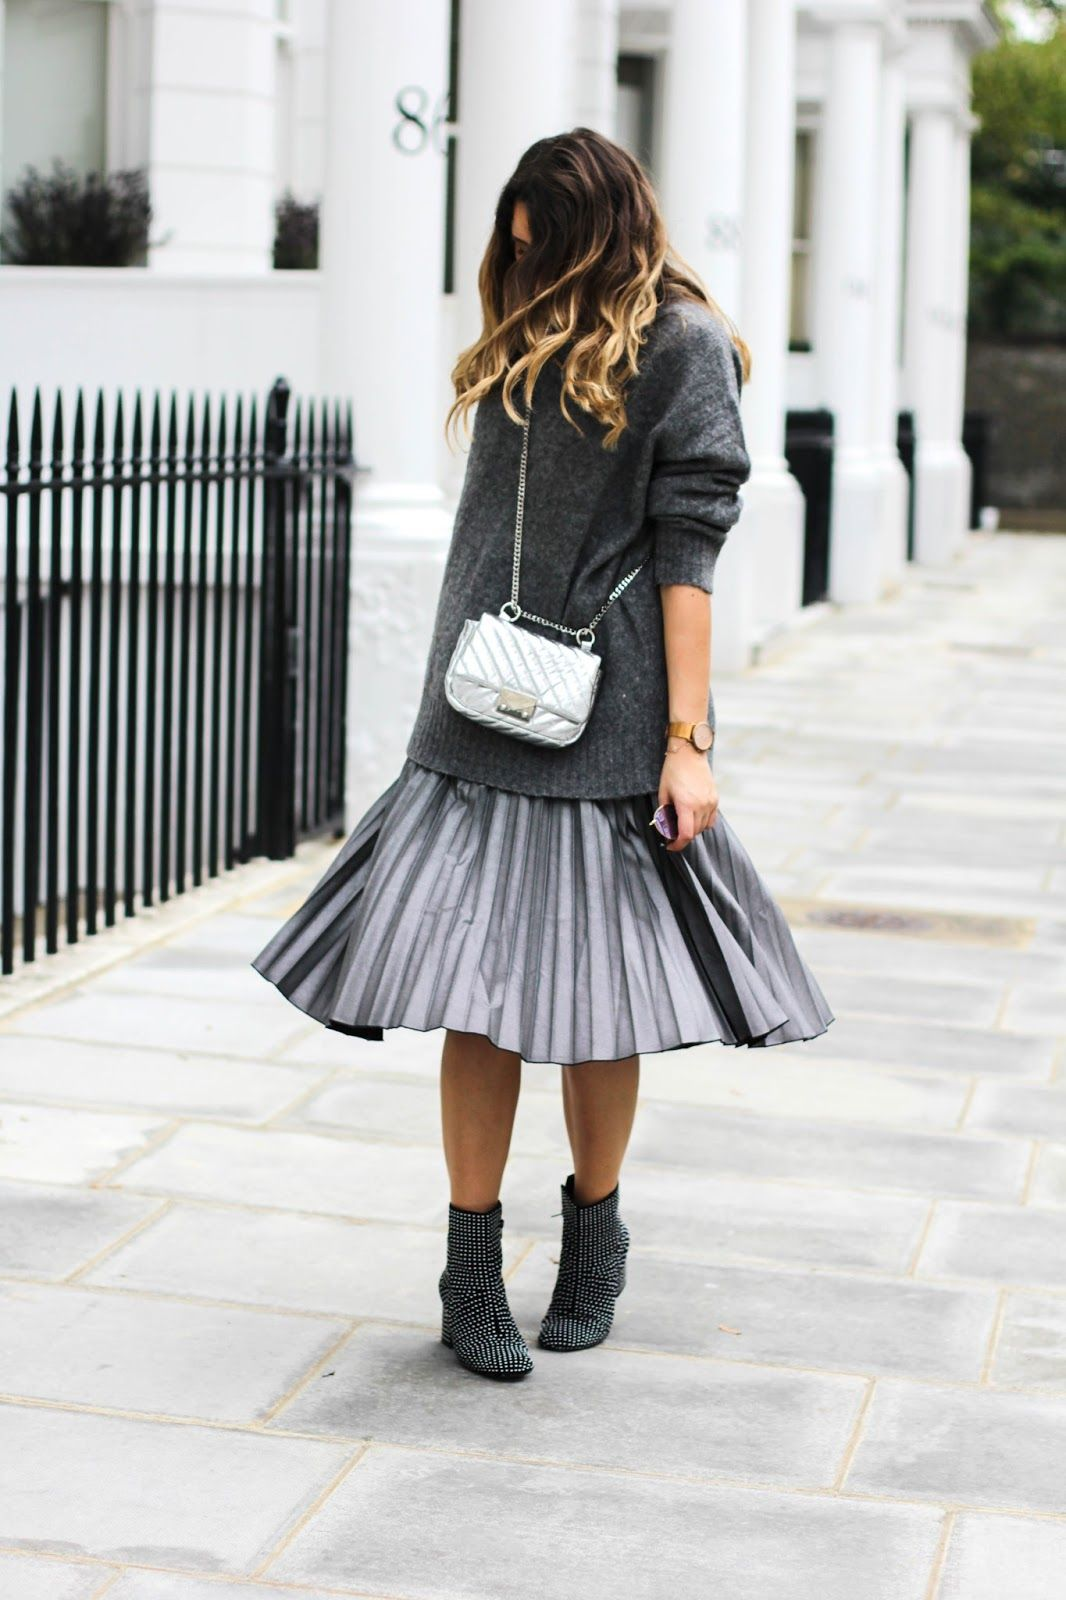 62c0a91583ad7 How To Wear A Pleated Midi Skirt This Winter | Ρούχα που θέλω να ...